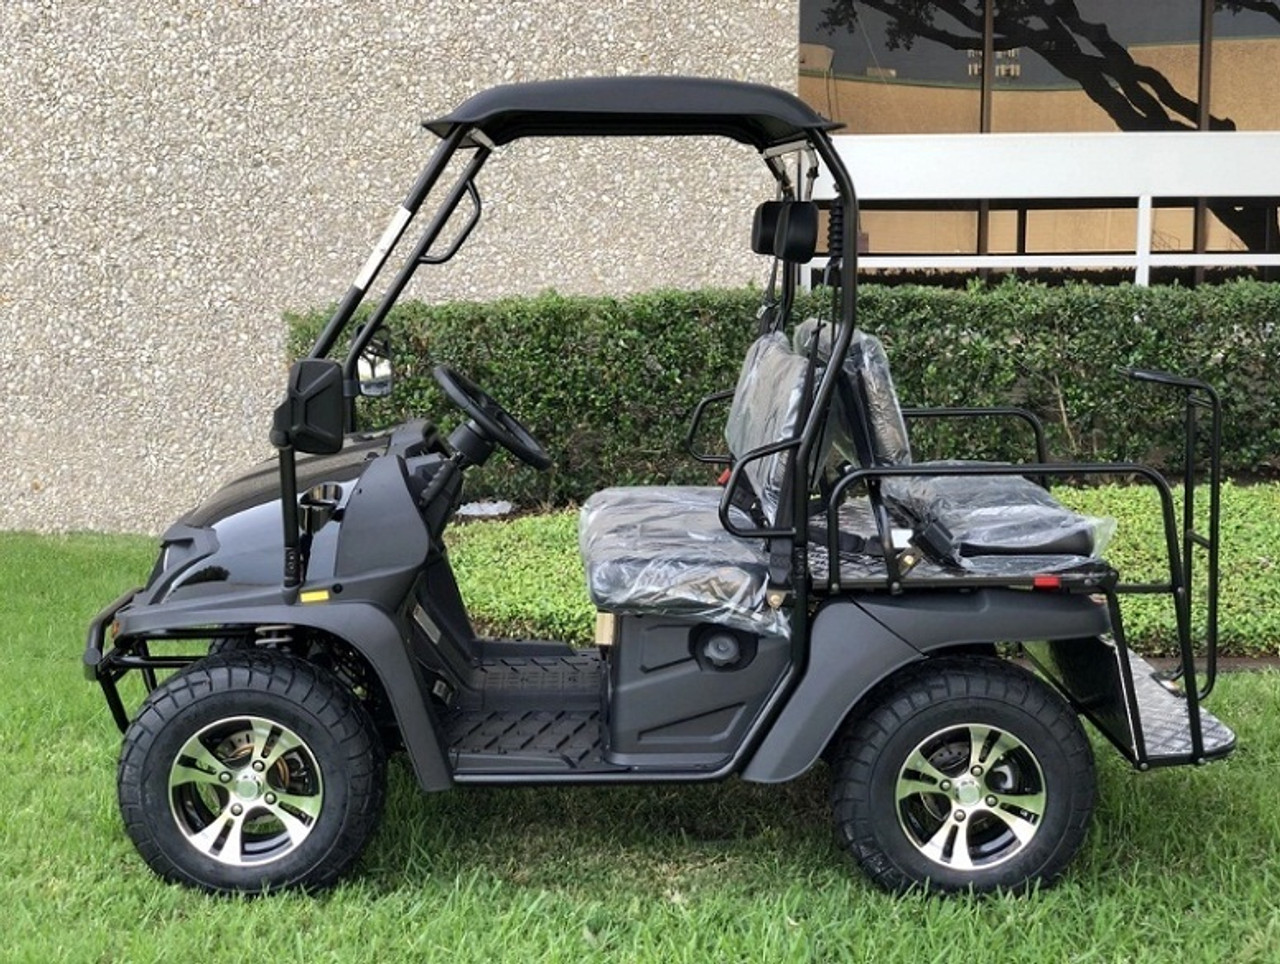 Black- Fully Loaded Cazador OUTFITTER 200 Golf Cart 4 Seater Street Legal UTV - Fully Assembled and Tested